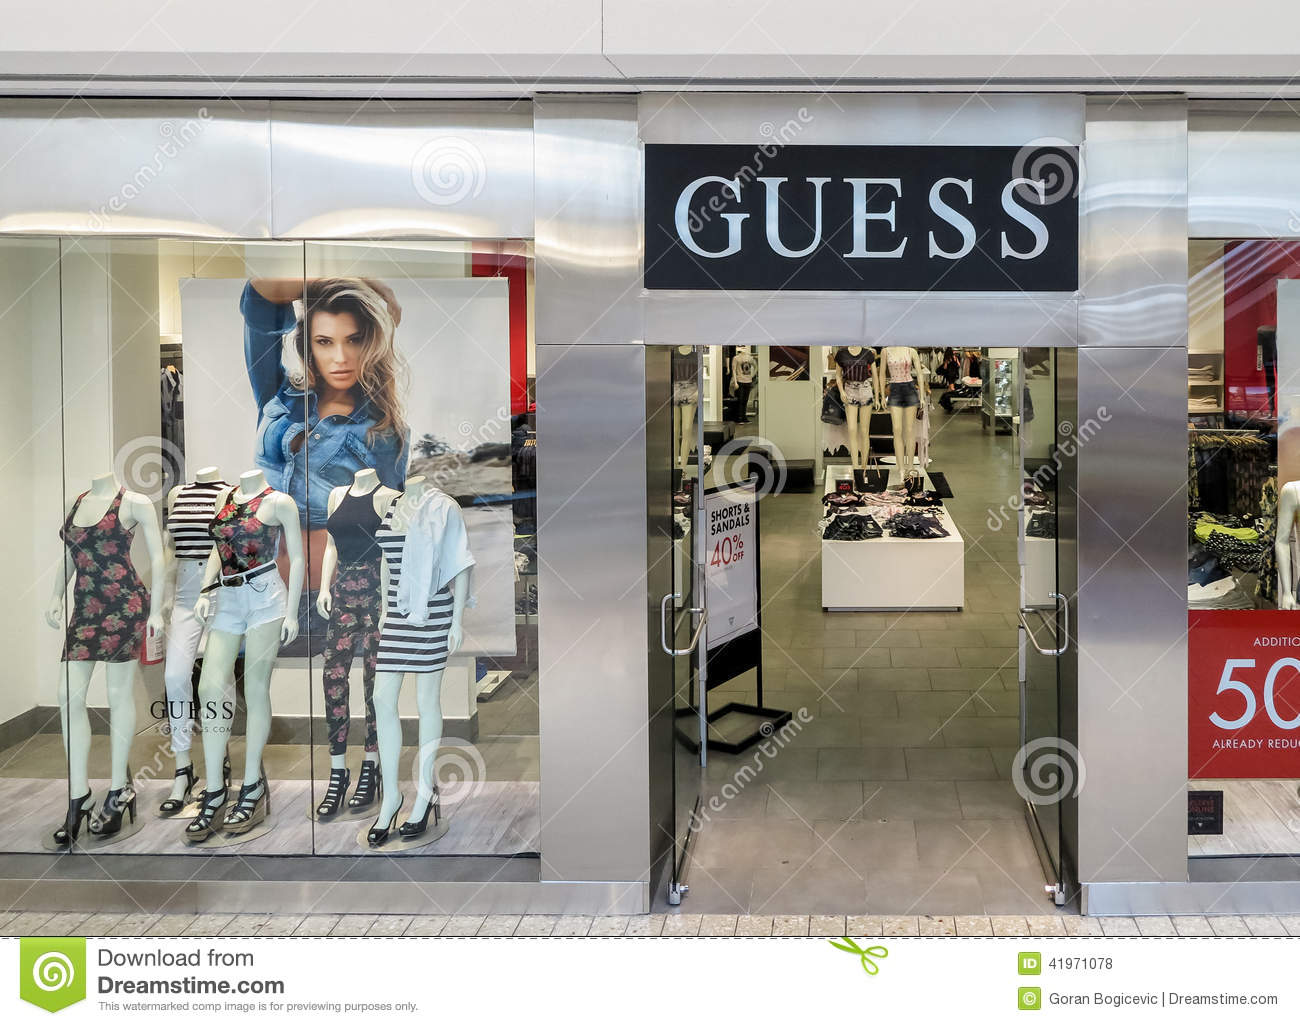 of the Guess store in Denver. Guess is American upscale clothing